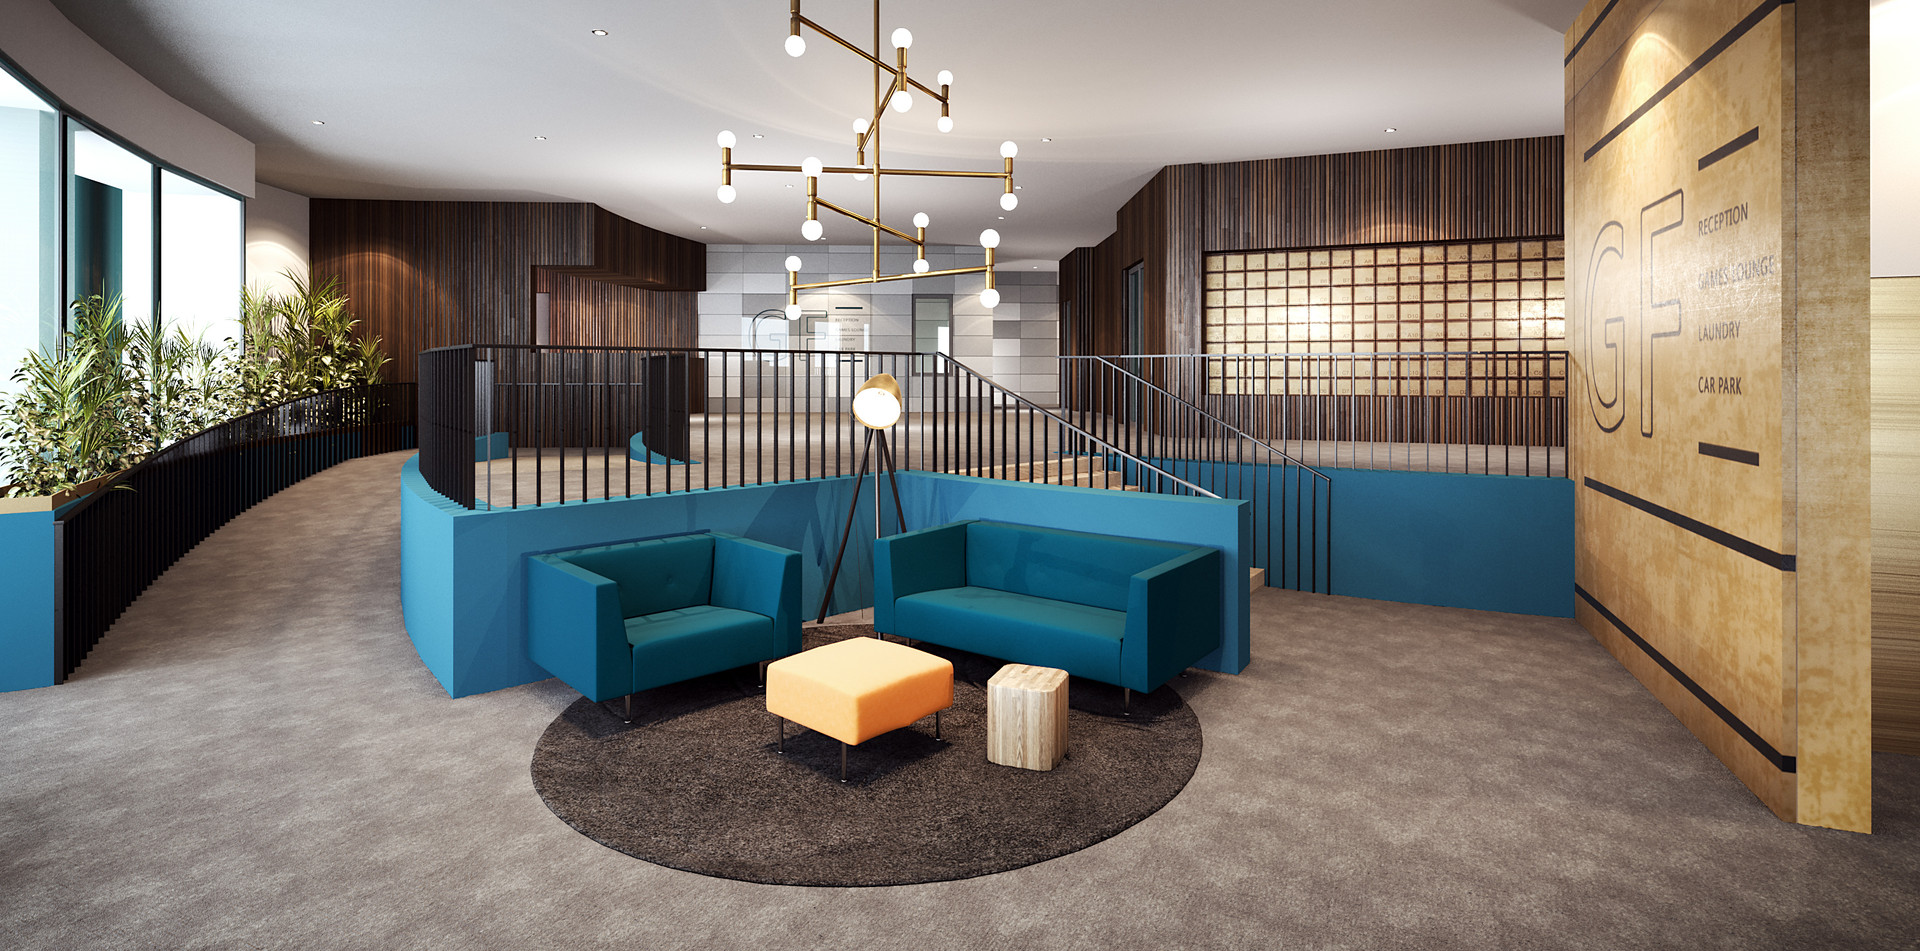 The Rise student property investment in Liverpool UK